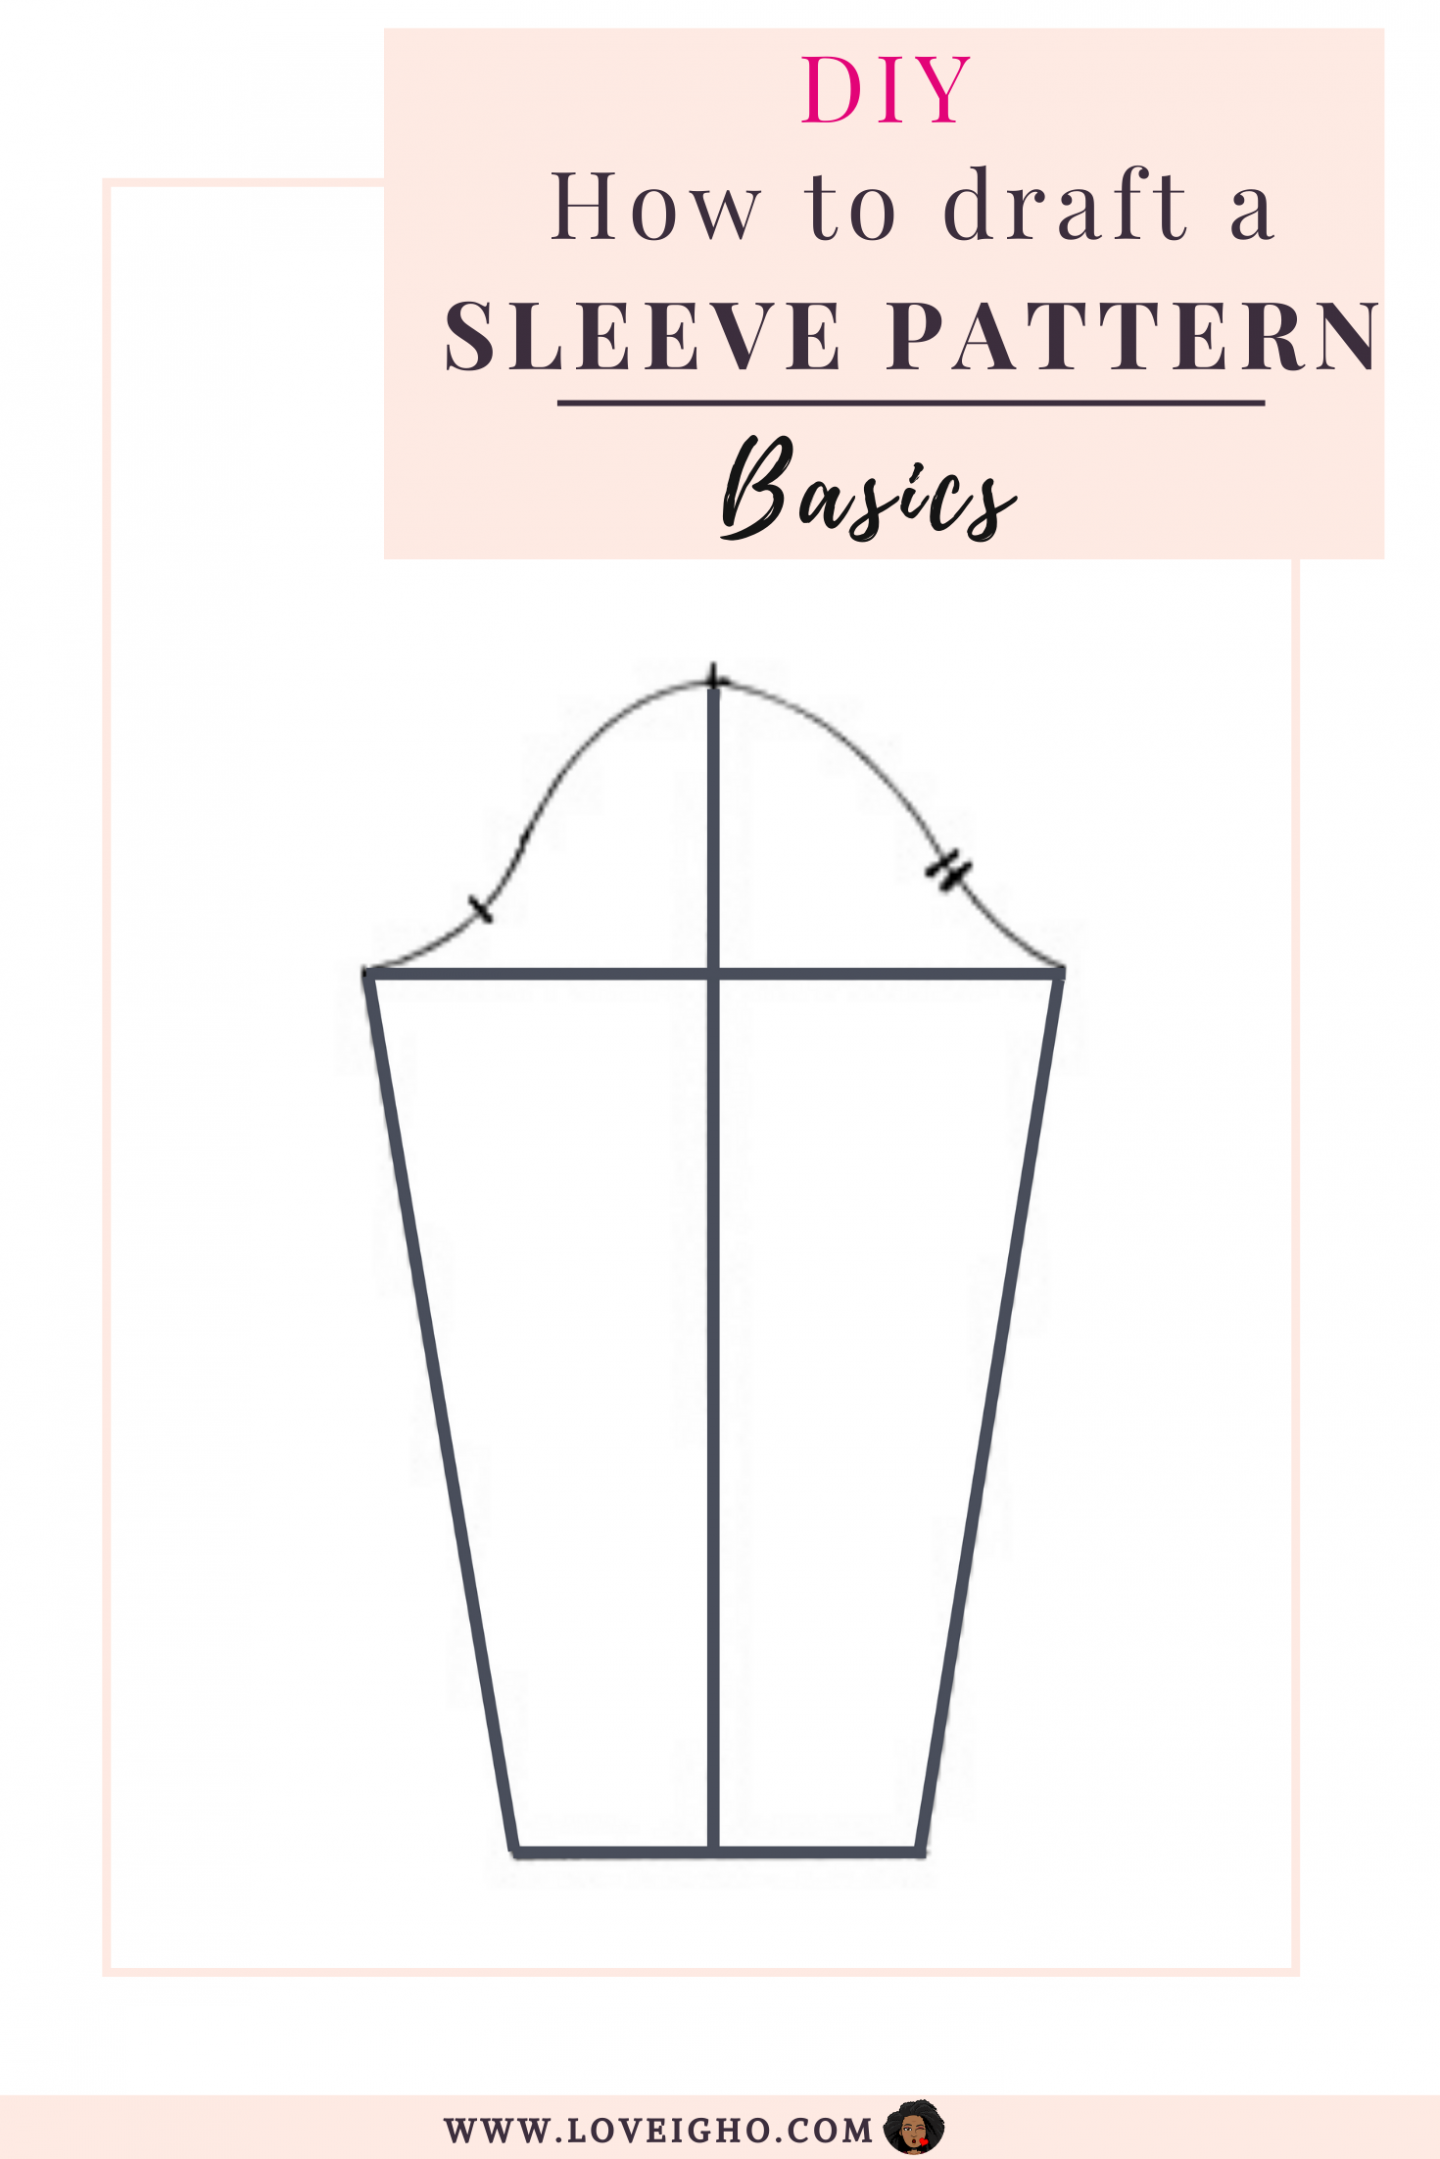 How to draft a basic Sleeve pattern | Love Igho